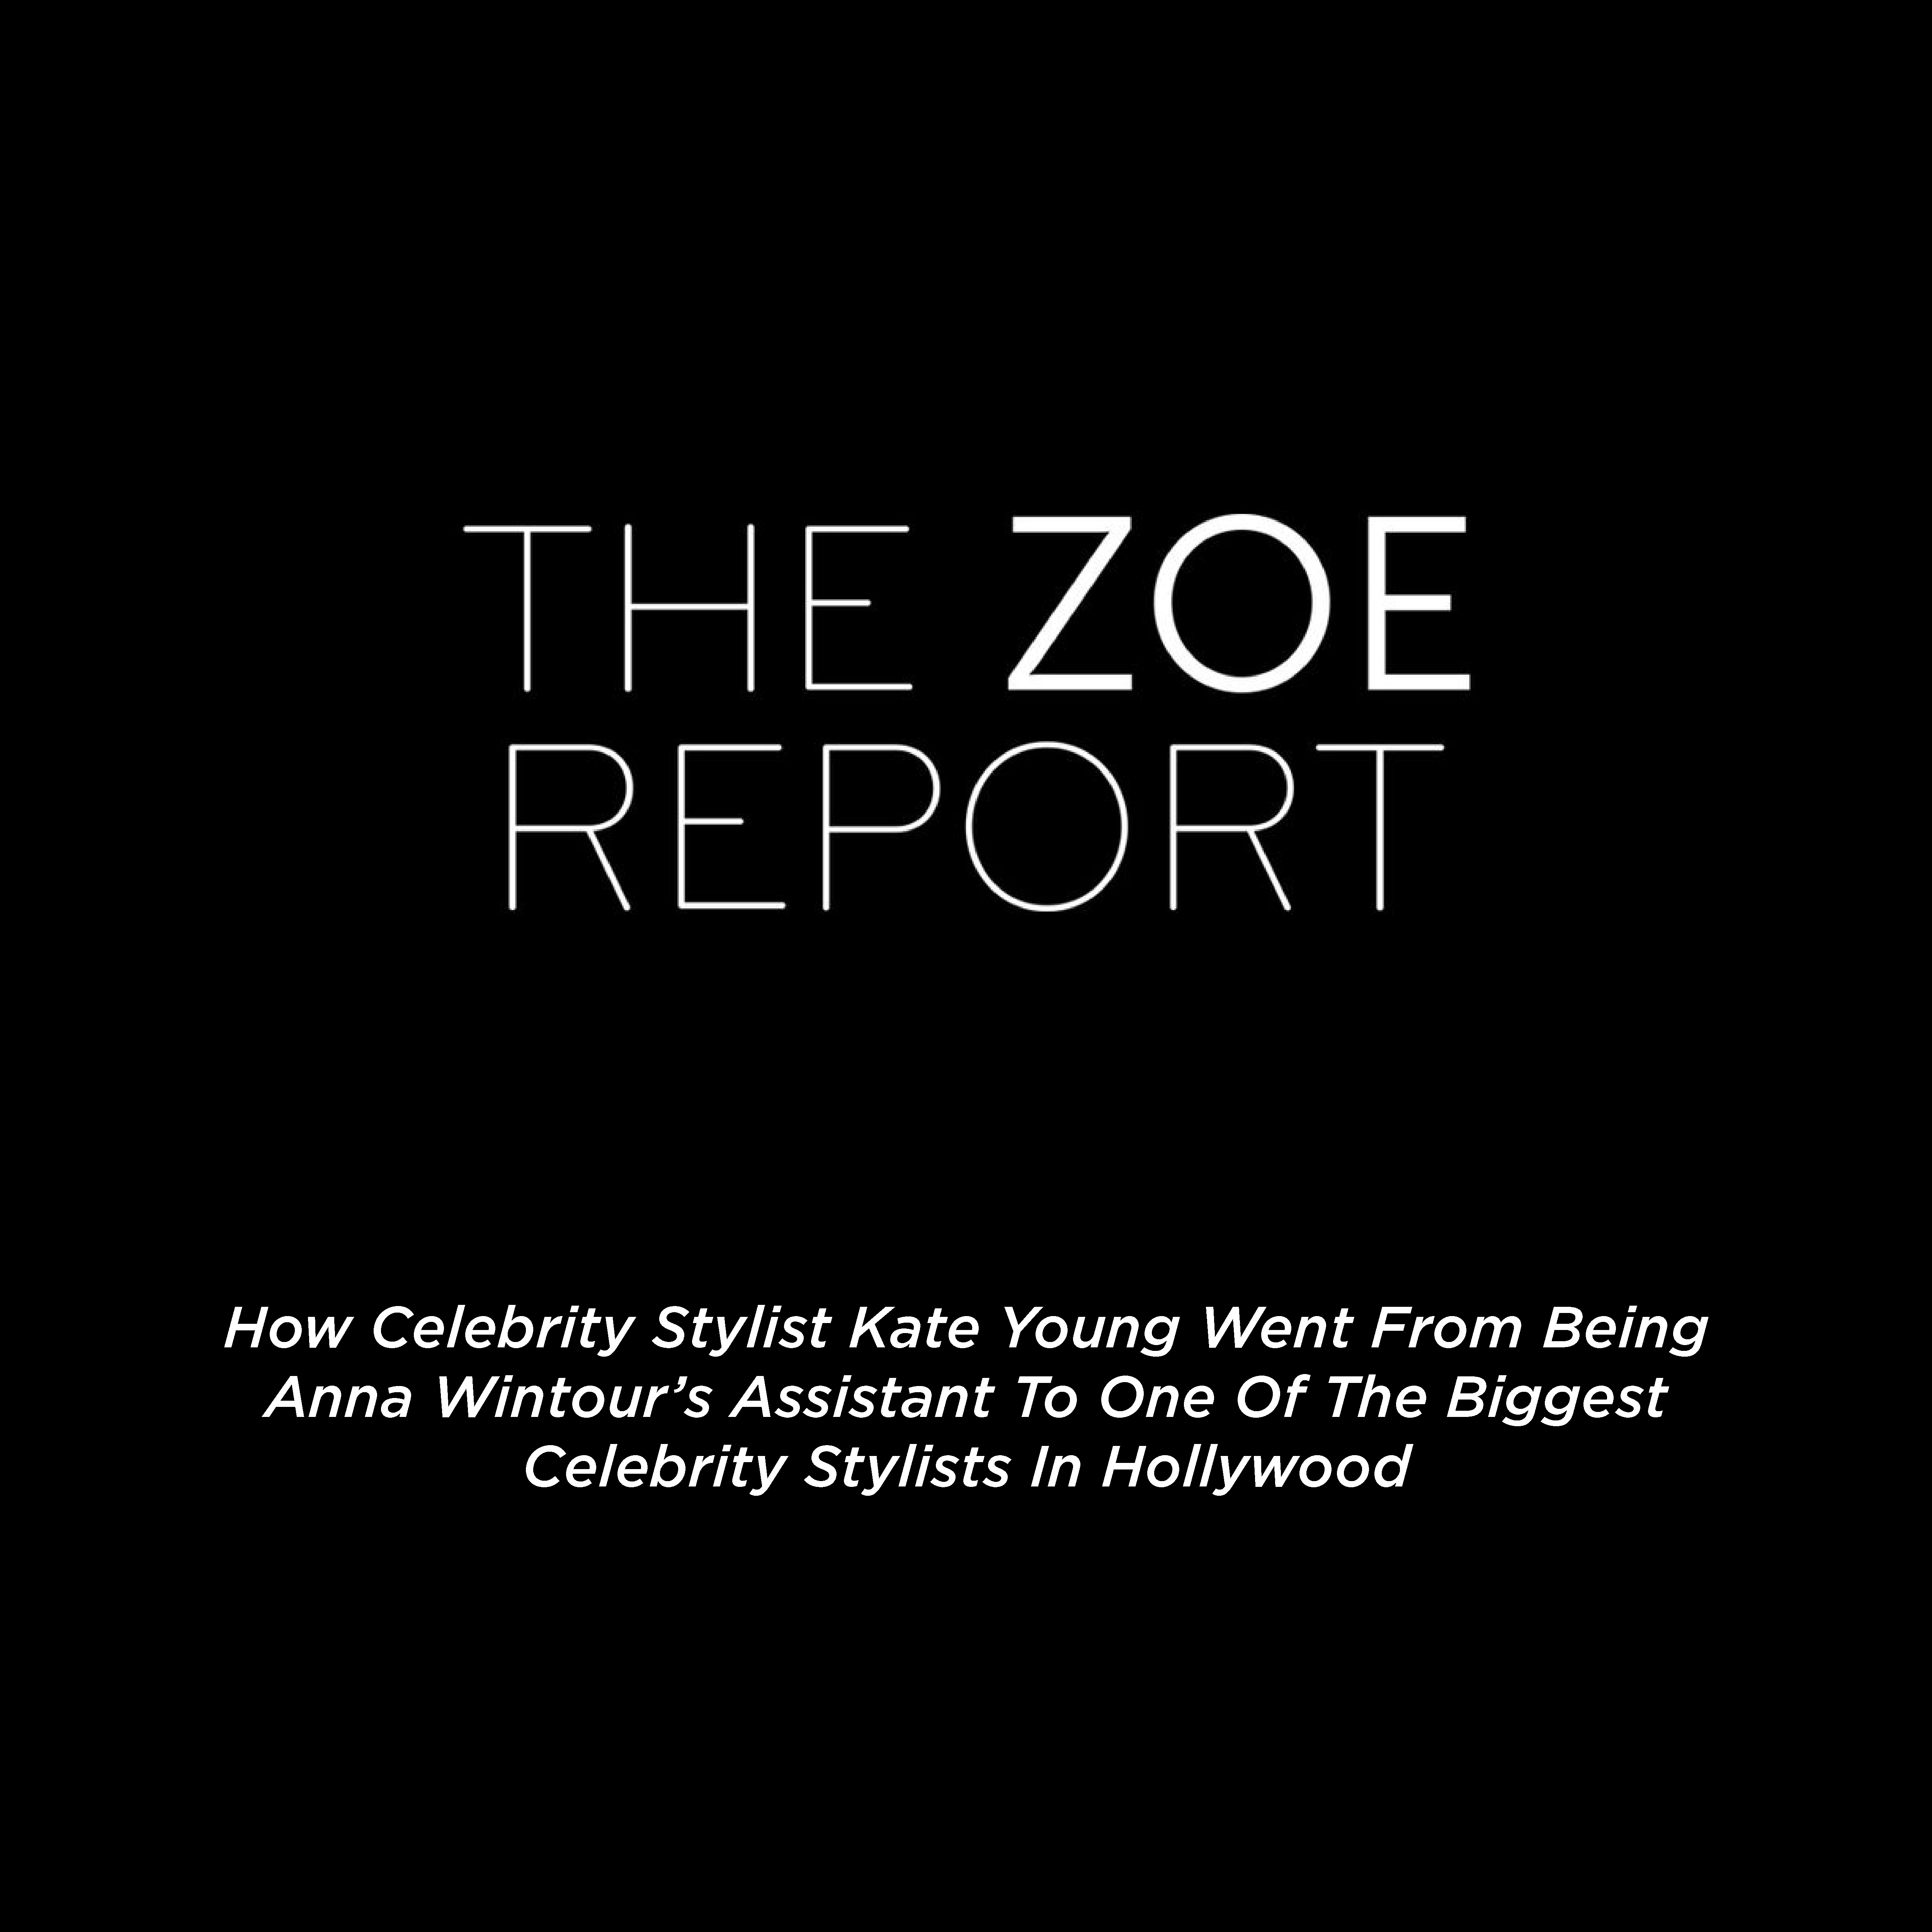 ONE OF HOLLYWOOD'S BIGGEST STYLISTS KATE YOUNG AND KATE YOUNG FOR TURA FEATURED ON THE ZOE REPORT